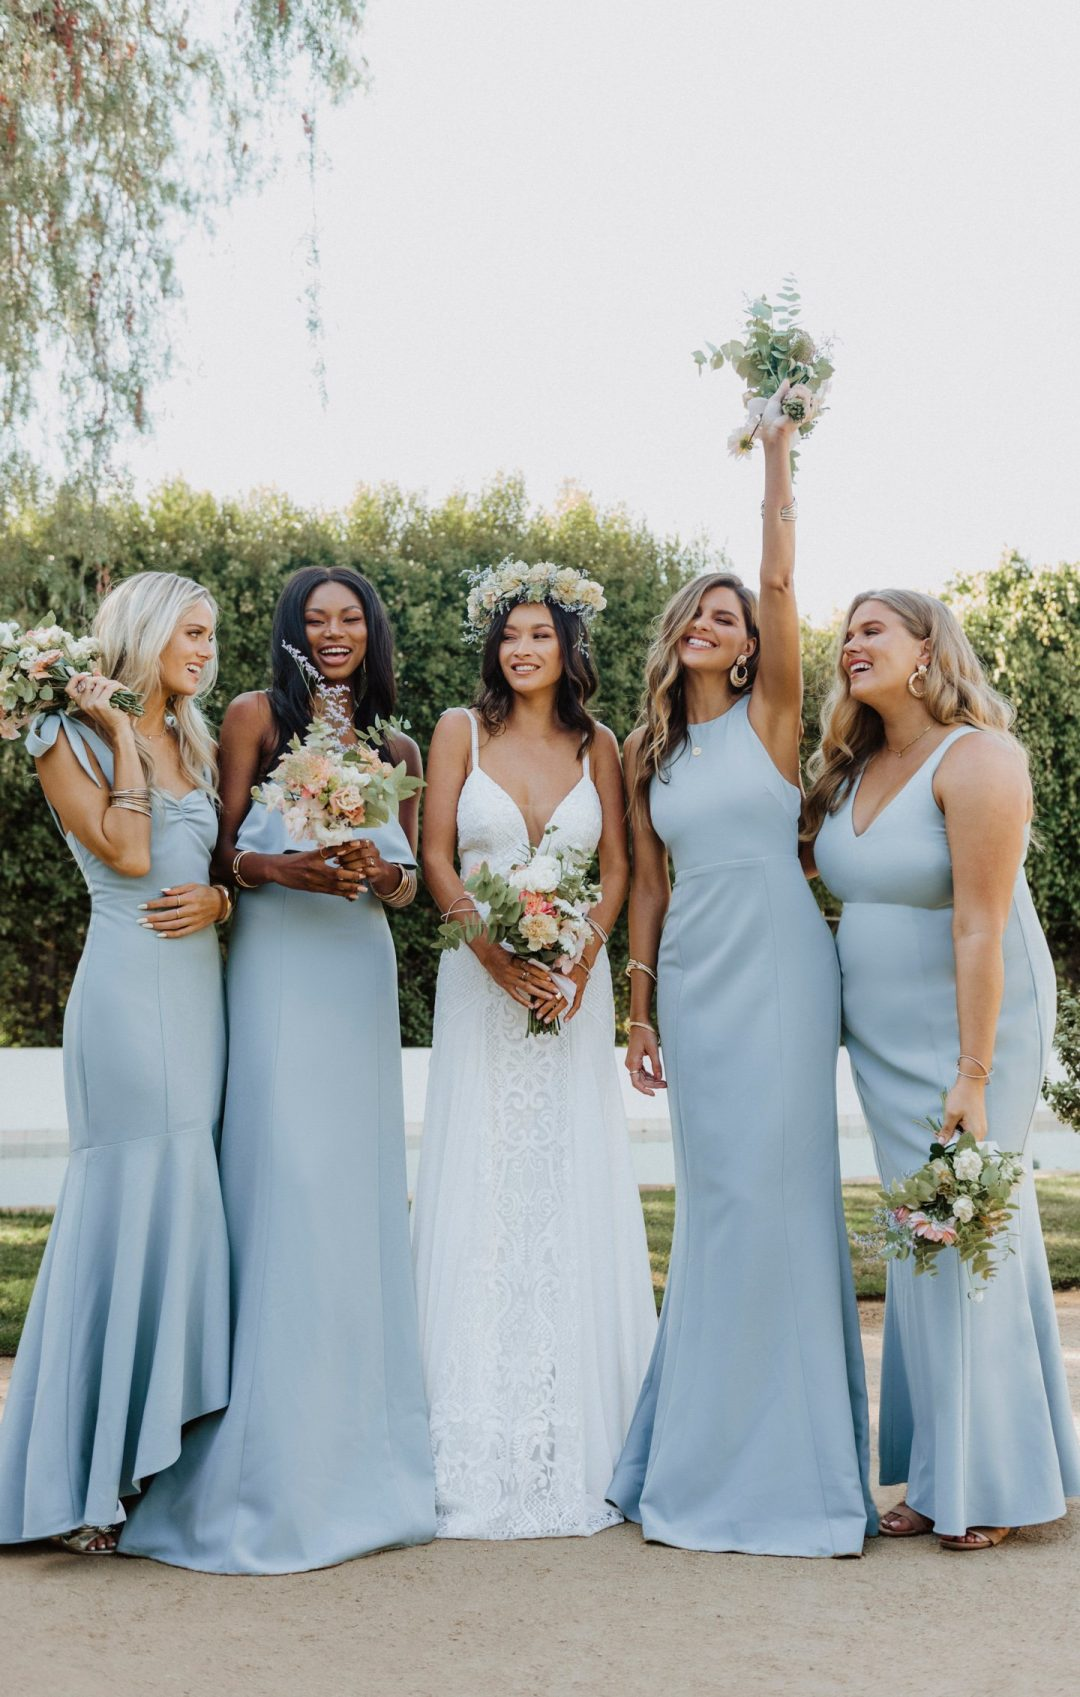 Mismatched dusty blue bridesmaid dresses with mermaid tail